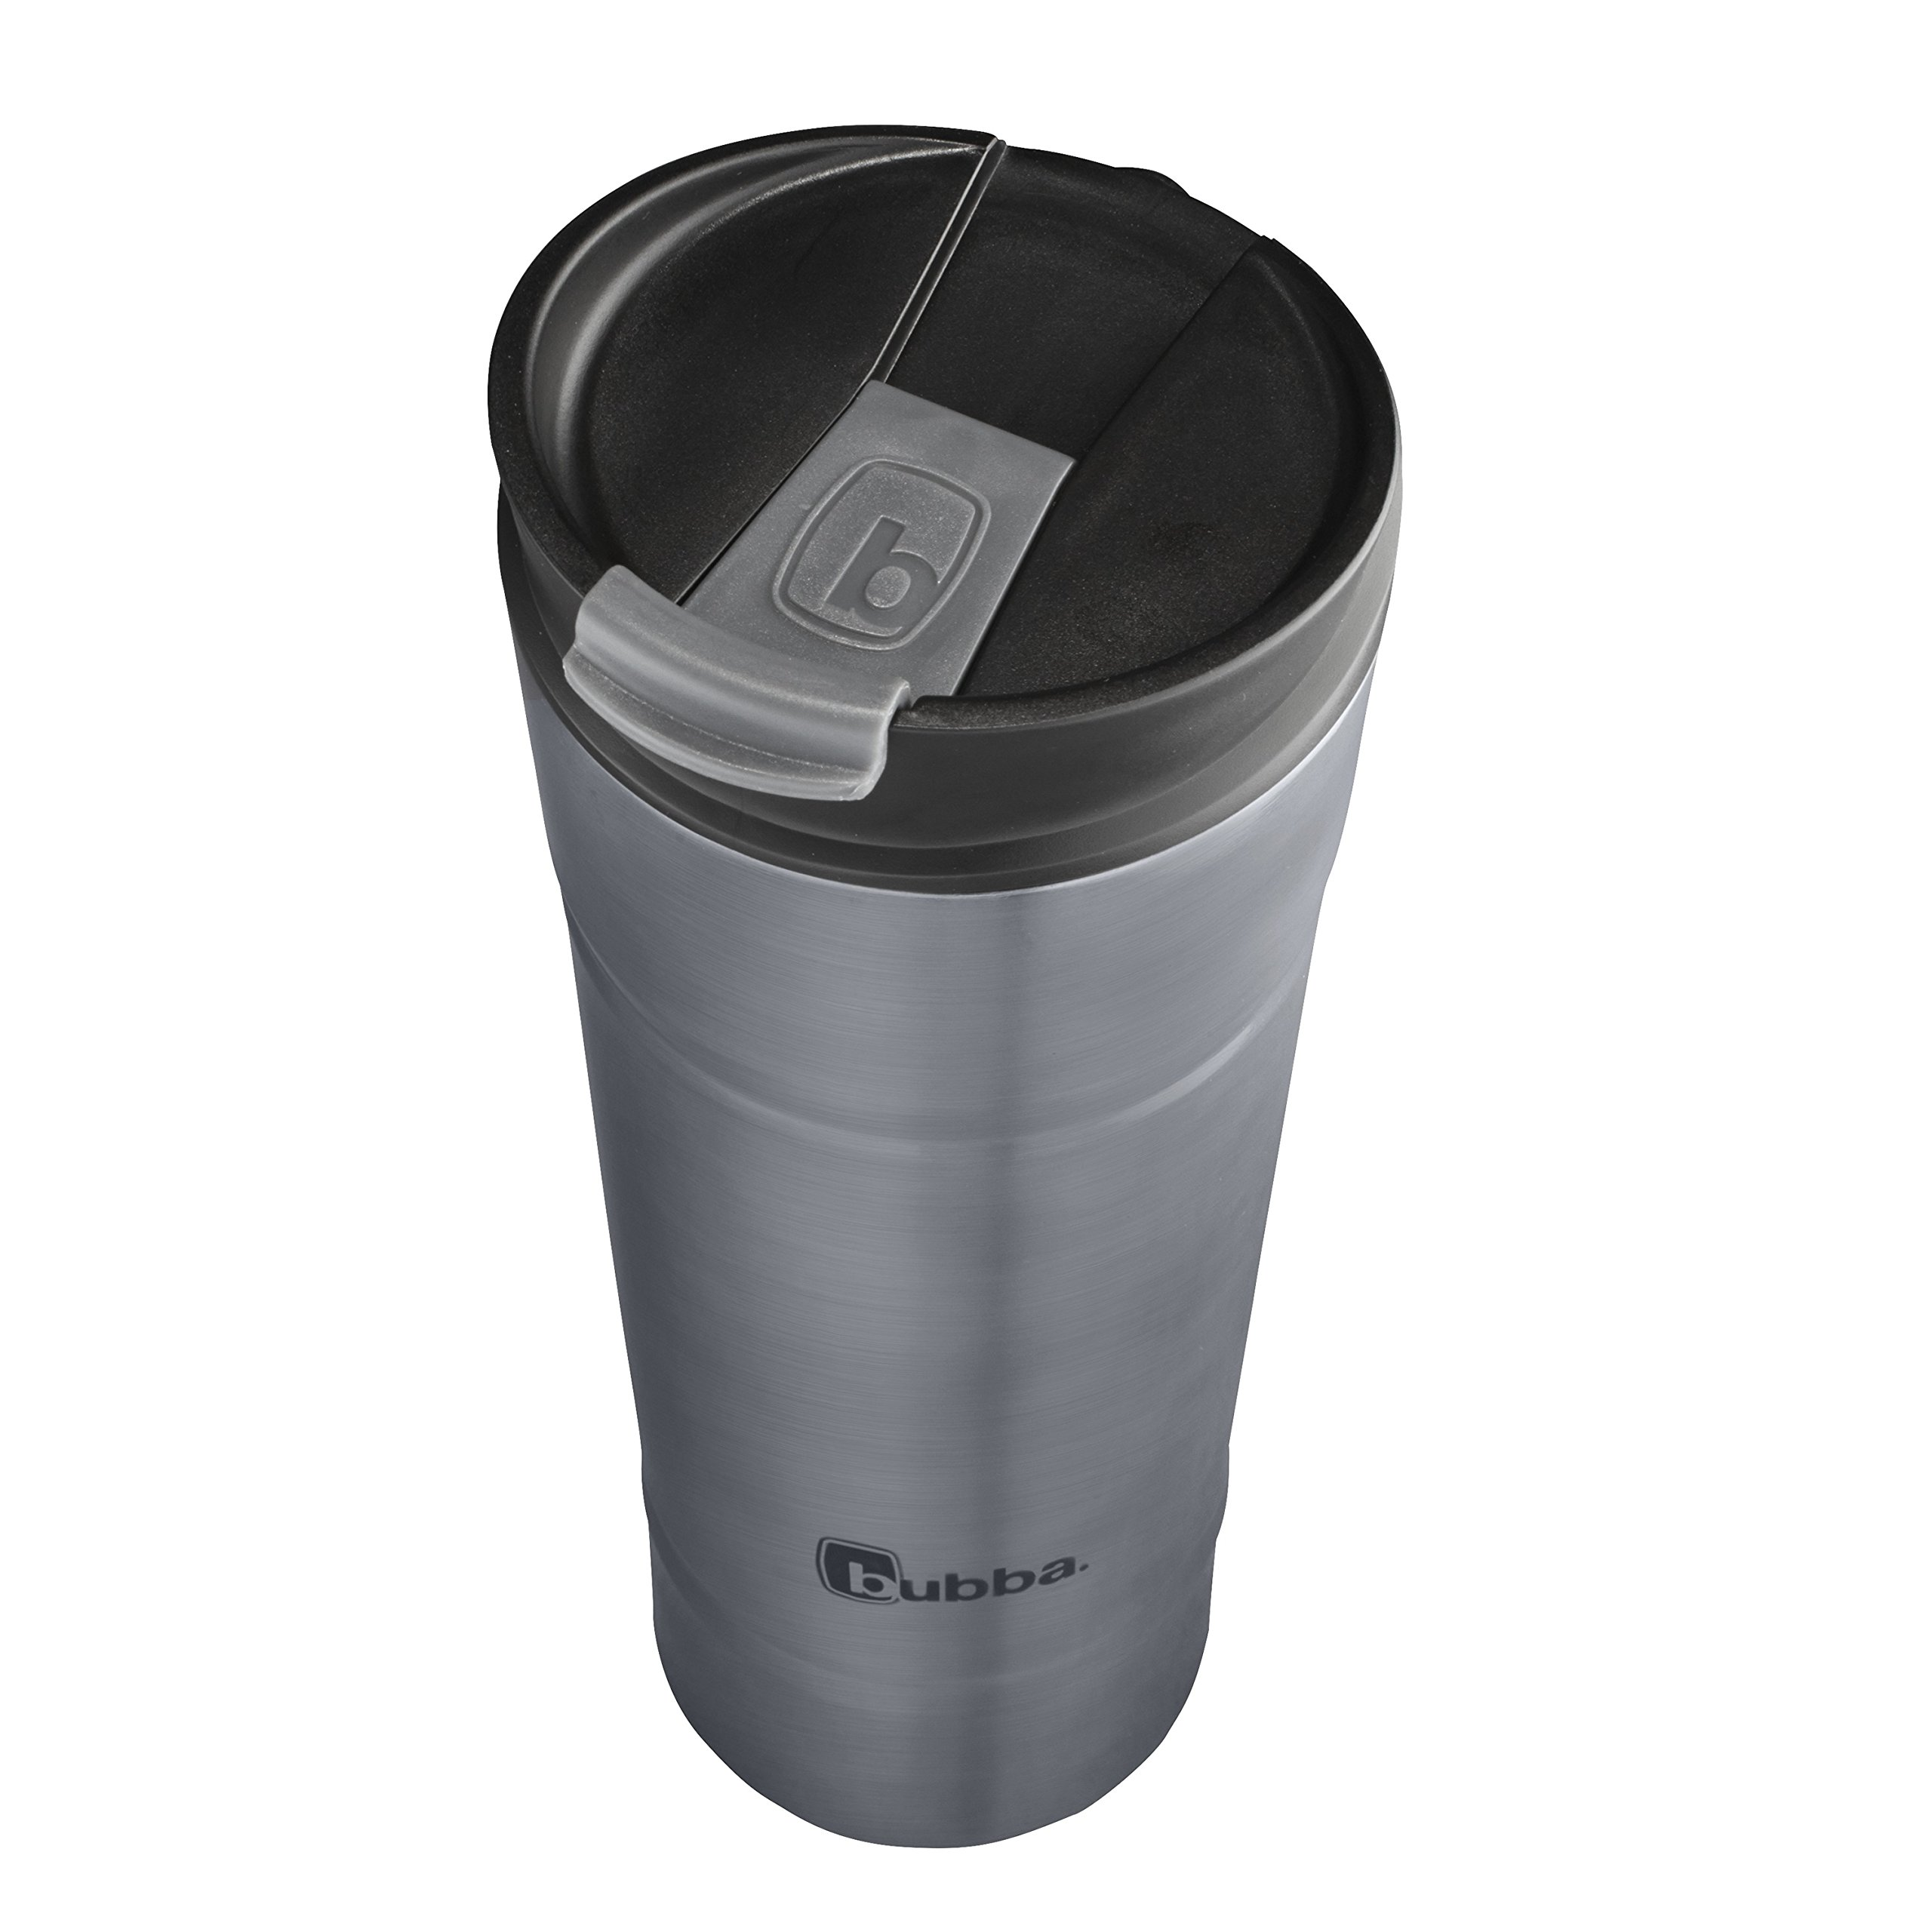 Bubba HT Vacuum-Insulated Stainless Steel Travel Mug, 20 oz, Smoke by BUBBA BRANDS (Image #6)